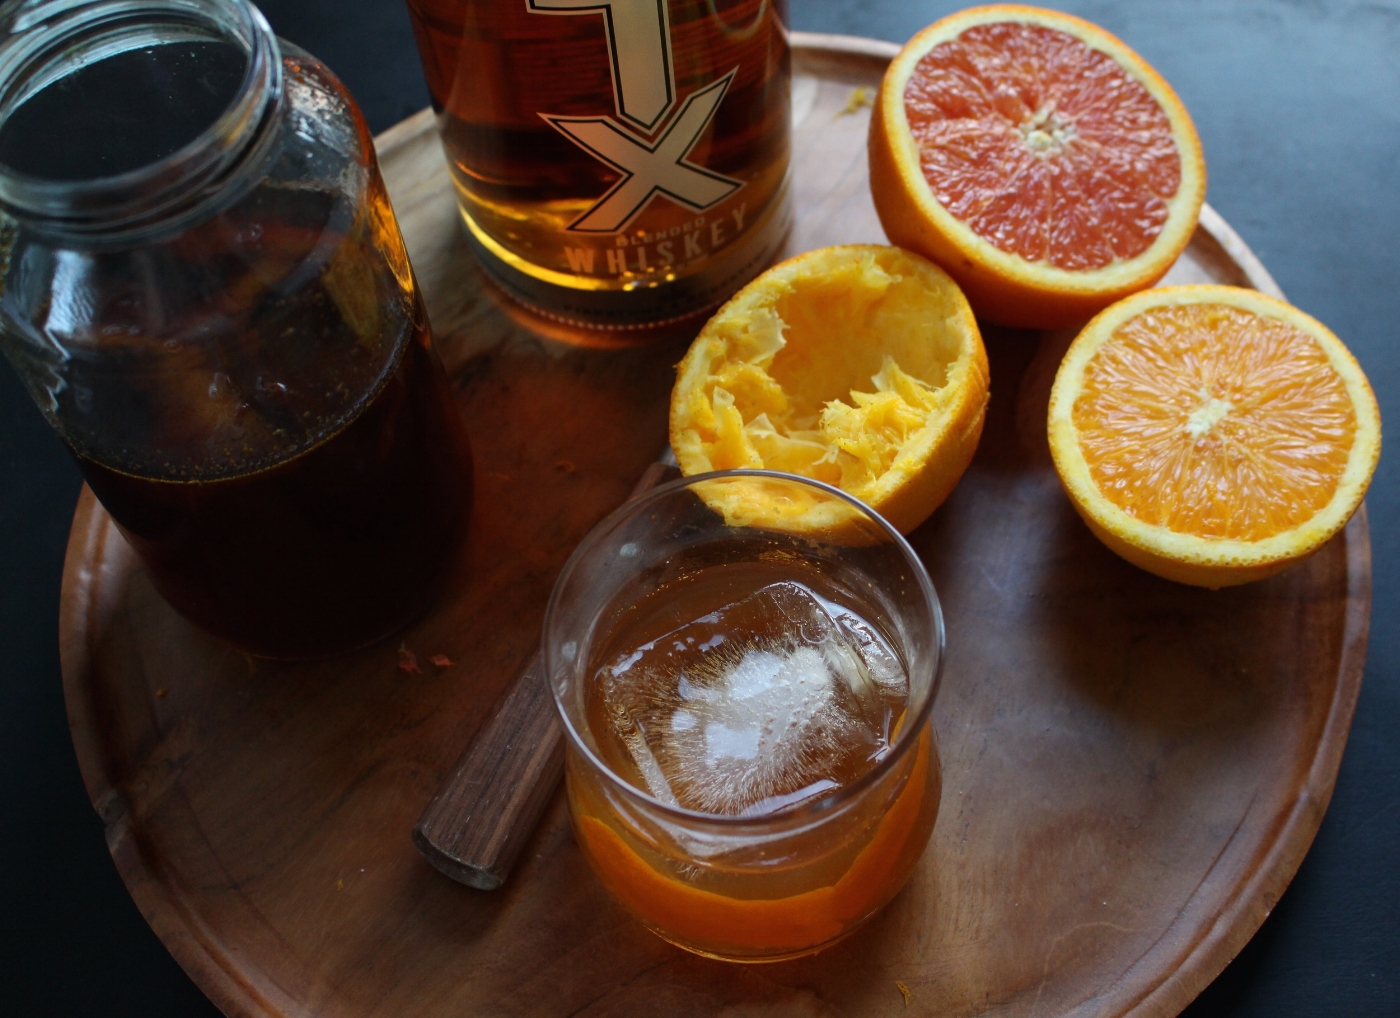 All of It - Flat Cap Cocktail - bourbon/whiskey + orange cream soda syrup + bitters